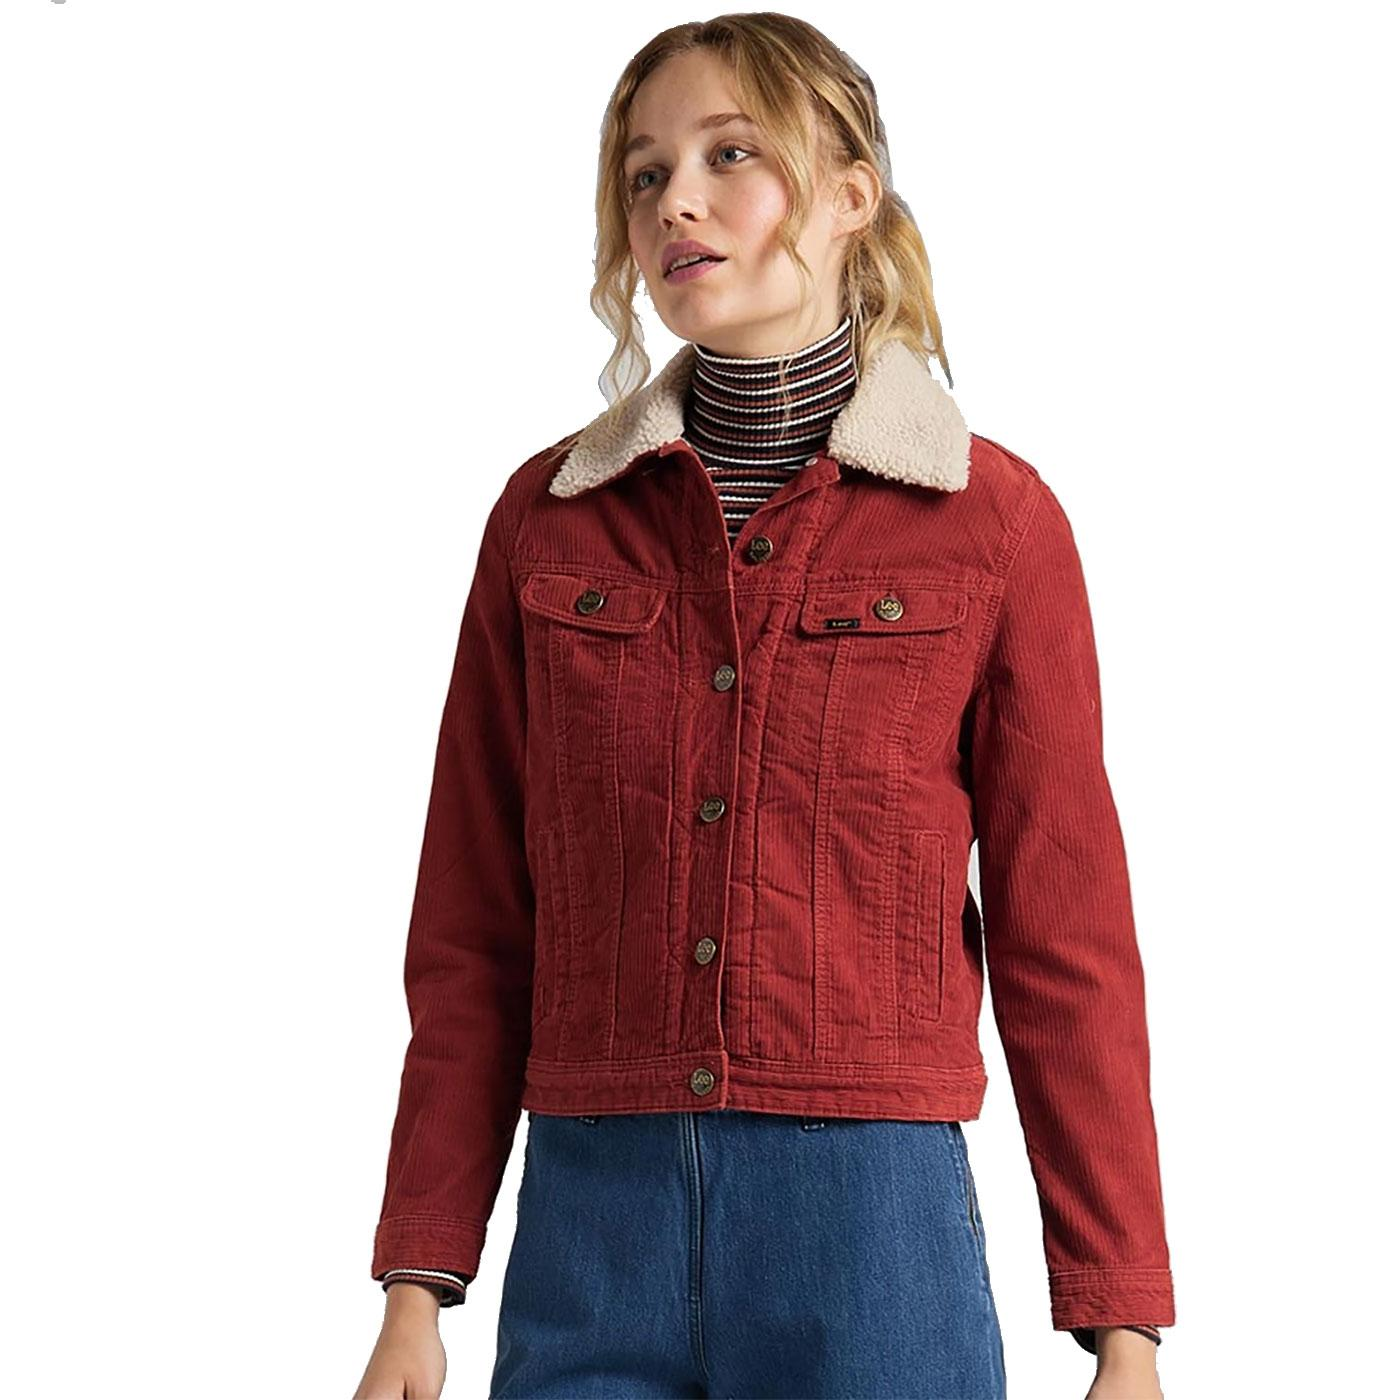 Rider LEE Womens Retro Sherpa Lined Cord Jacket RO